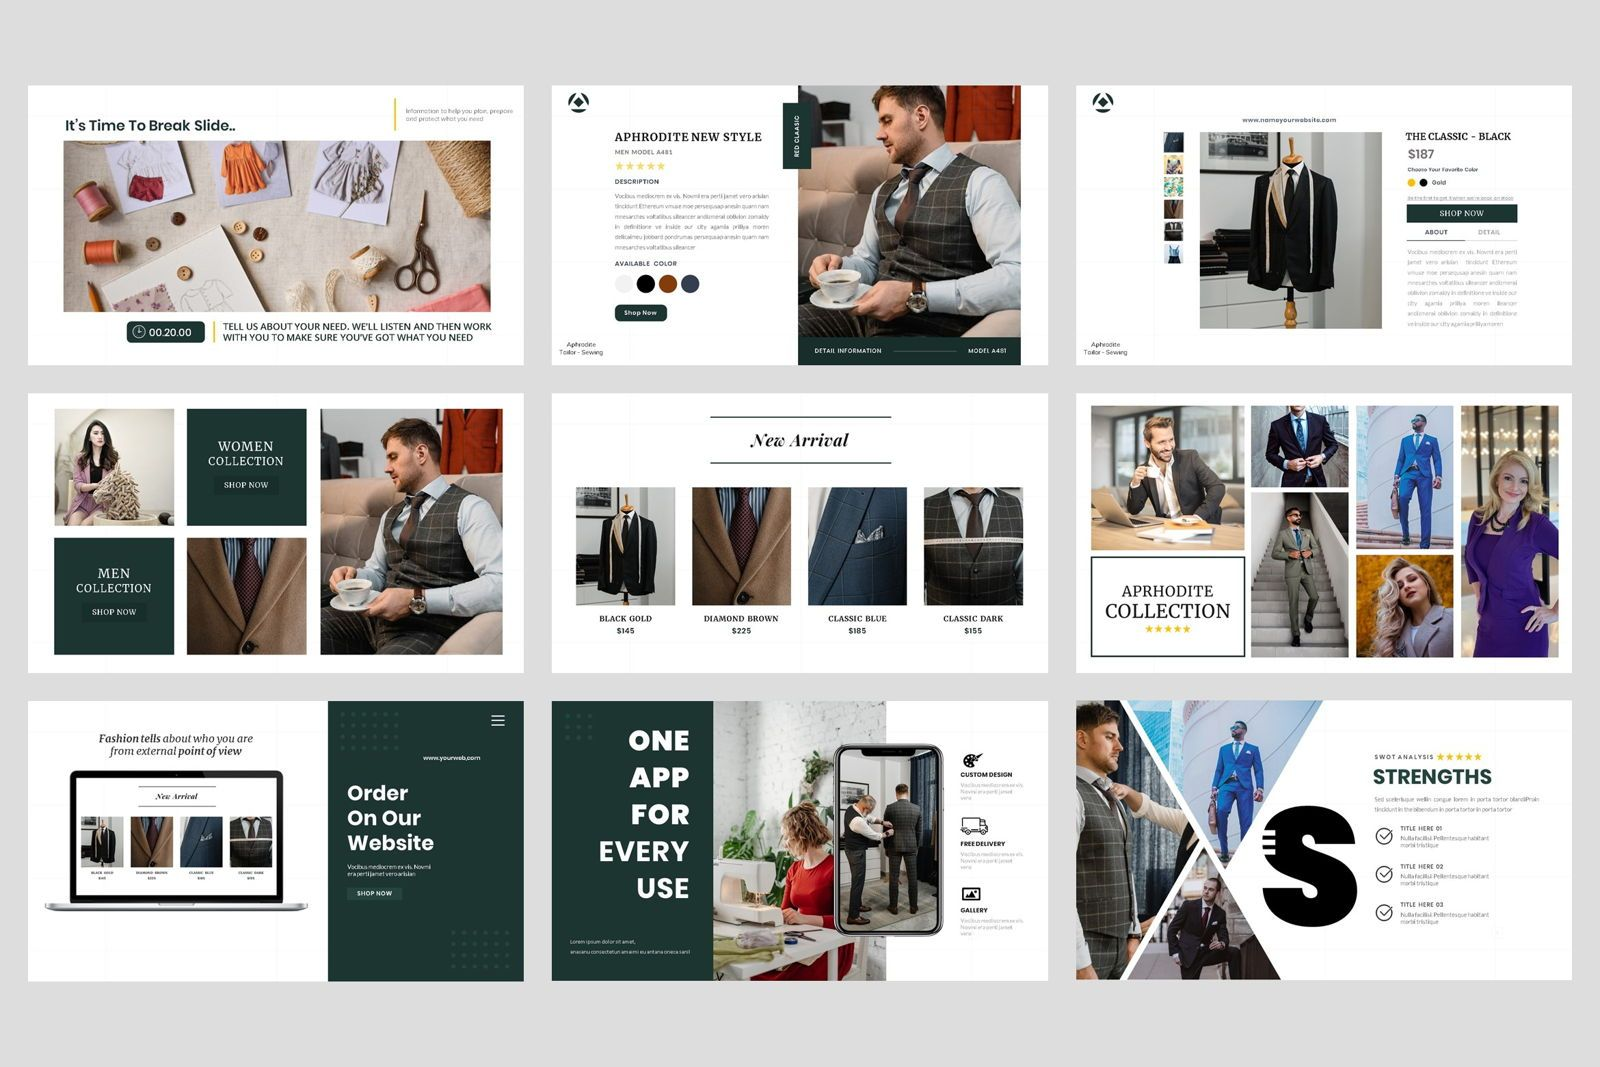 Tailor - Sewing Fashion Craft Power Point Template, Slide 4, 08609, Business Models — PoweredTemplate.com